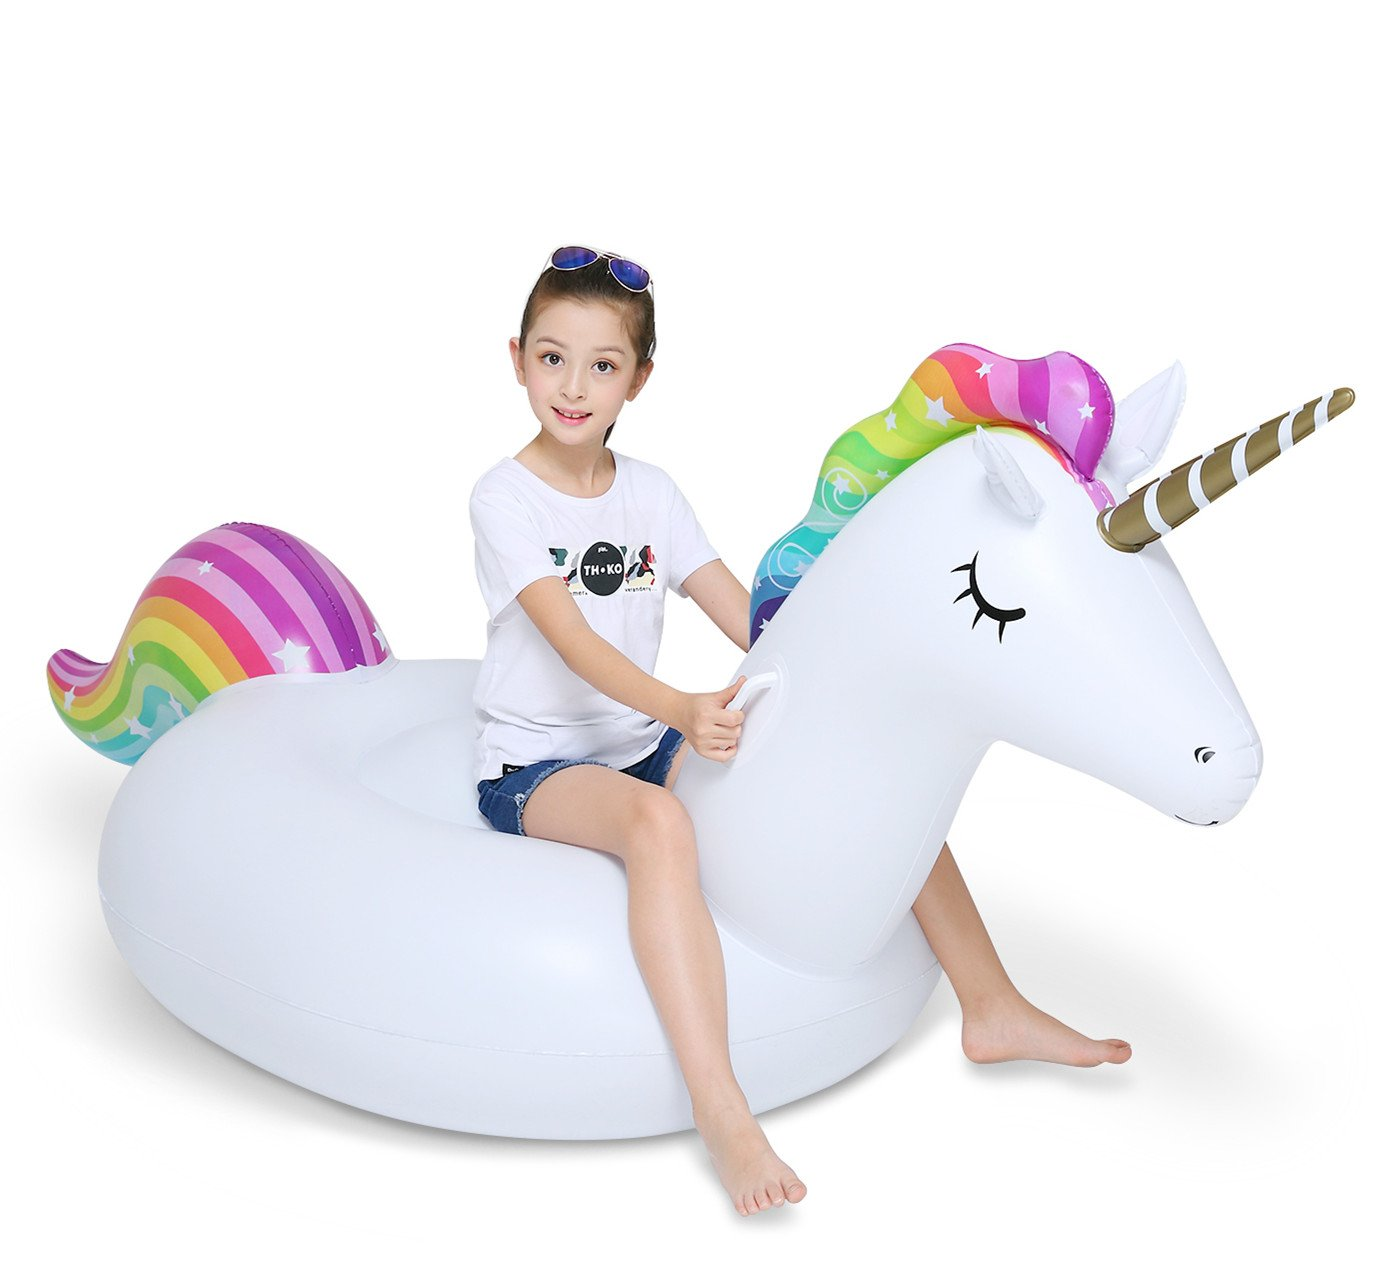 Jasonwell Big Inflatable Unicorn Pool Float Floatie Ride On with Rapid Valves Large Rideable Blow Up Summer Beach Swimming Pool Party Lounge Raft Decorations Toys Kids Adults